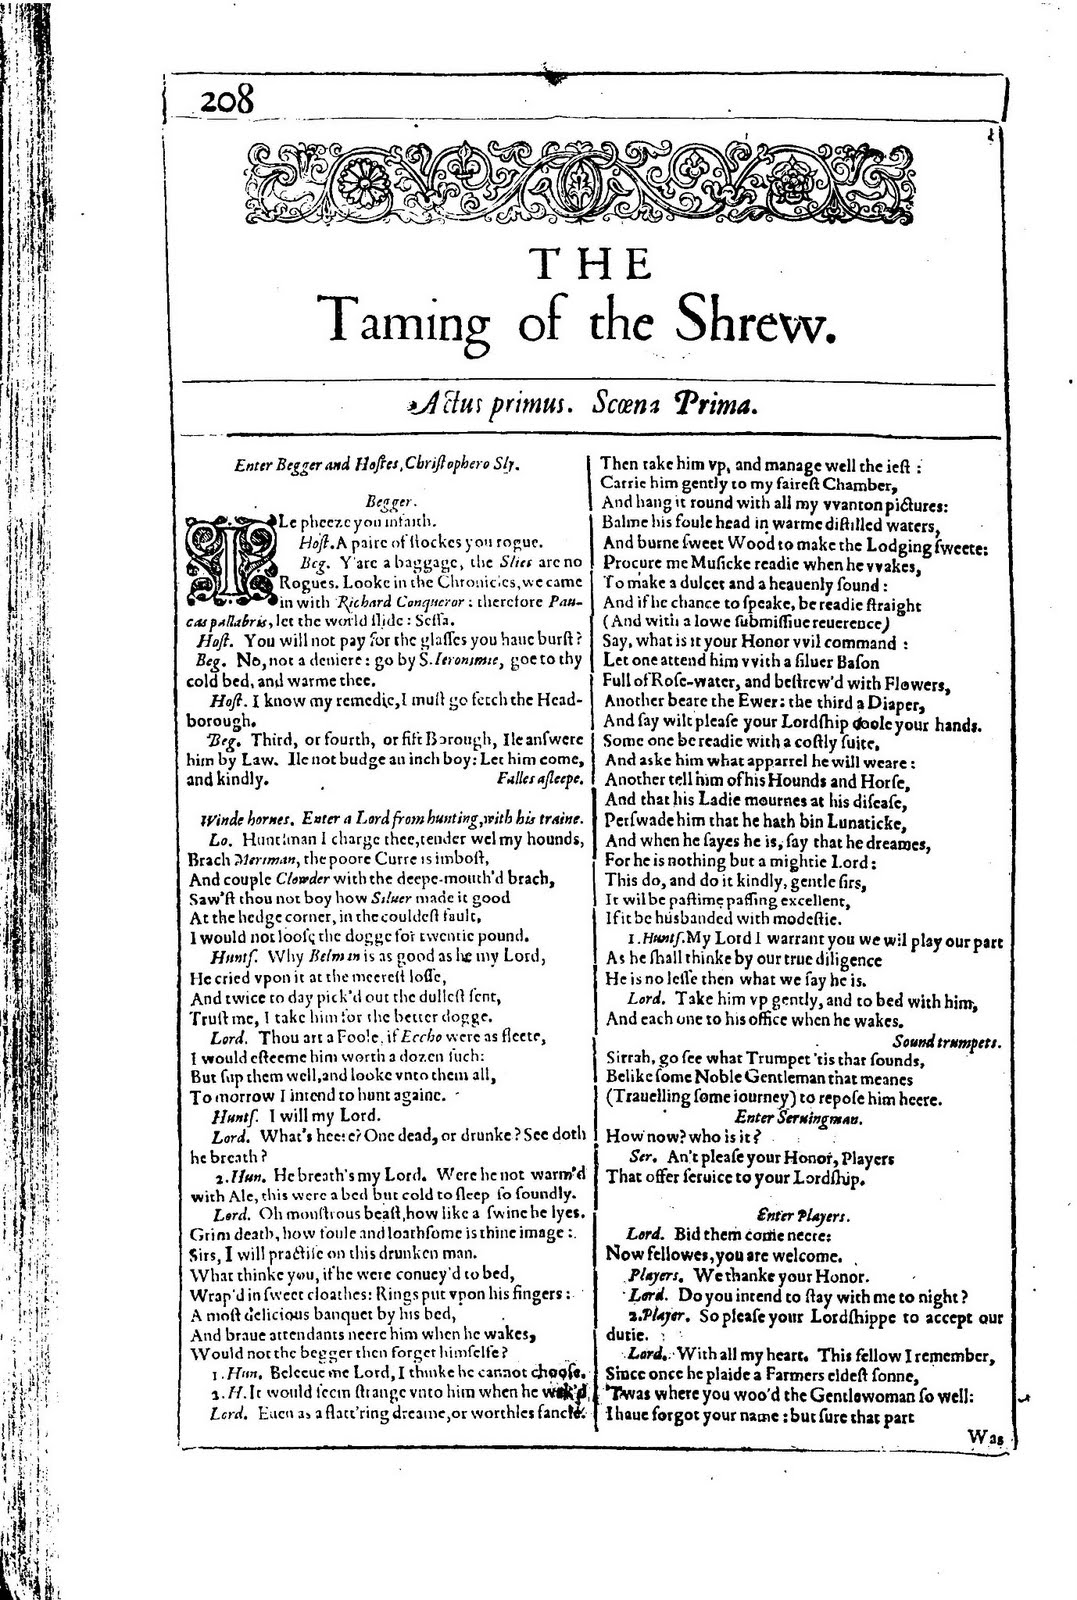 the taming of the shrew essay questions Taming of the shrew study guide  questions taming of